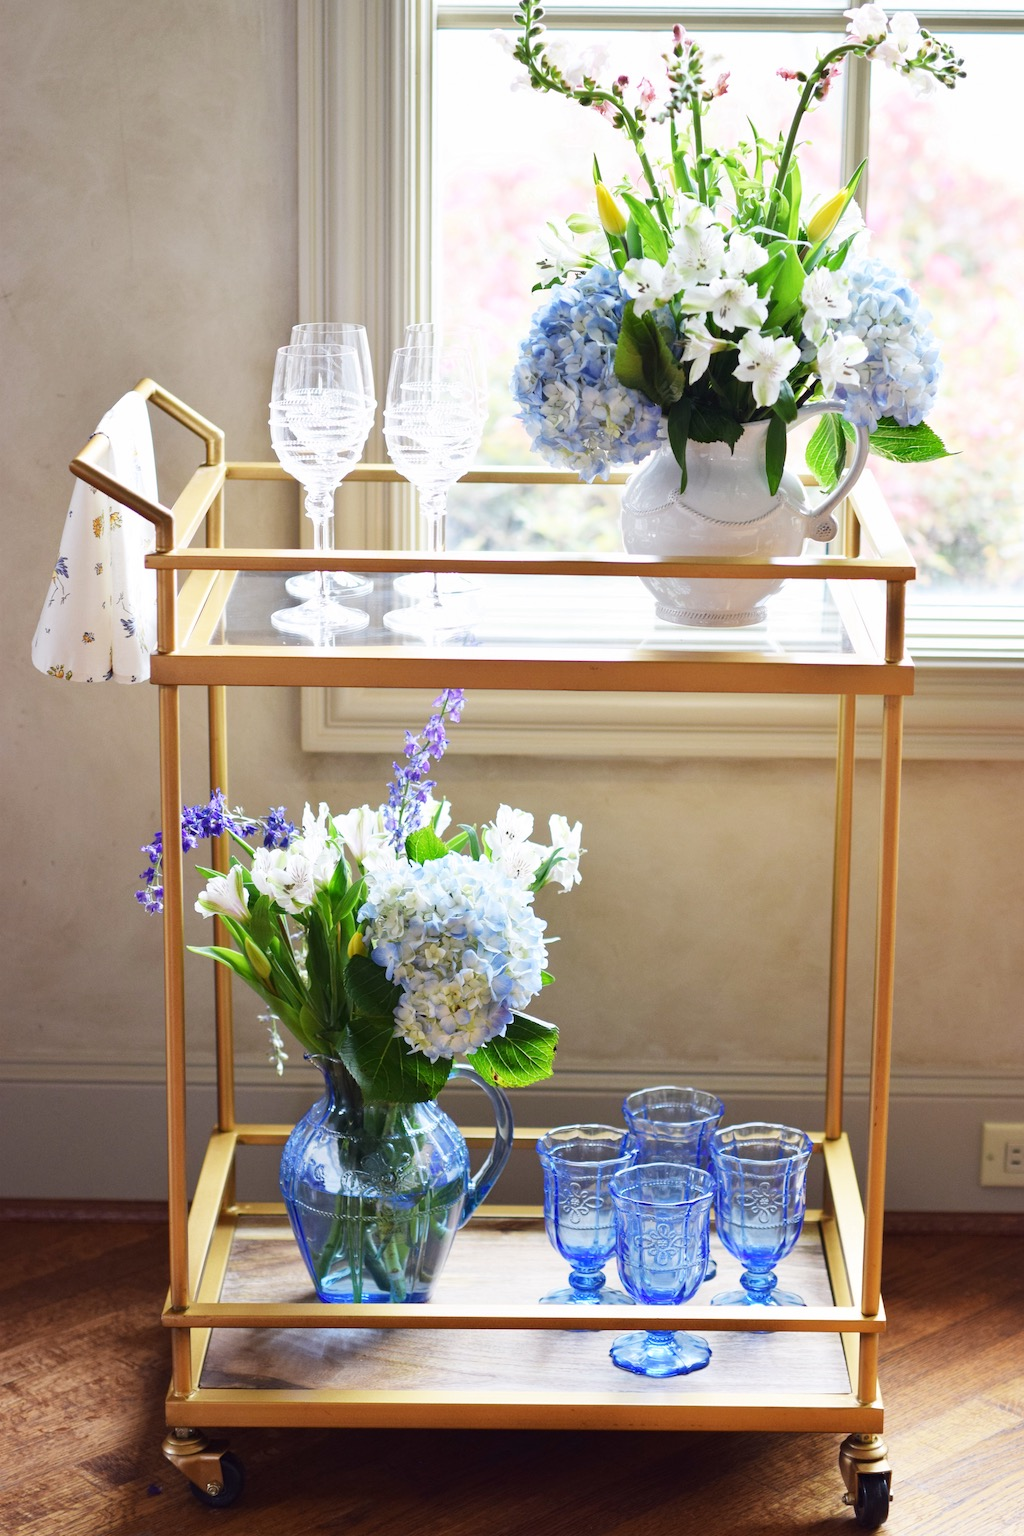 Spring Inspired Bar Cart | Interior Decor| The Darling Petite Diva